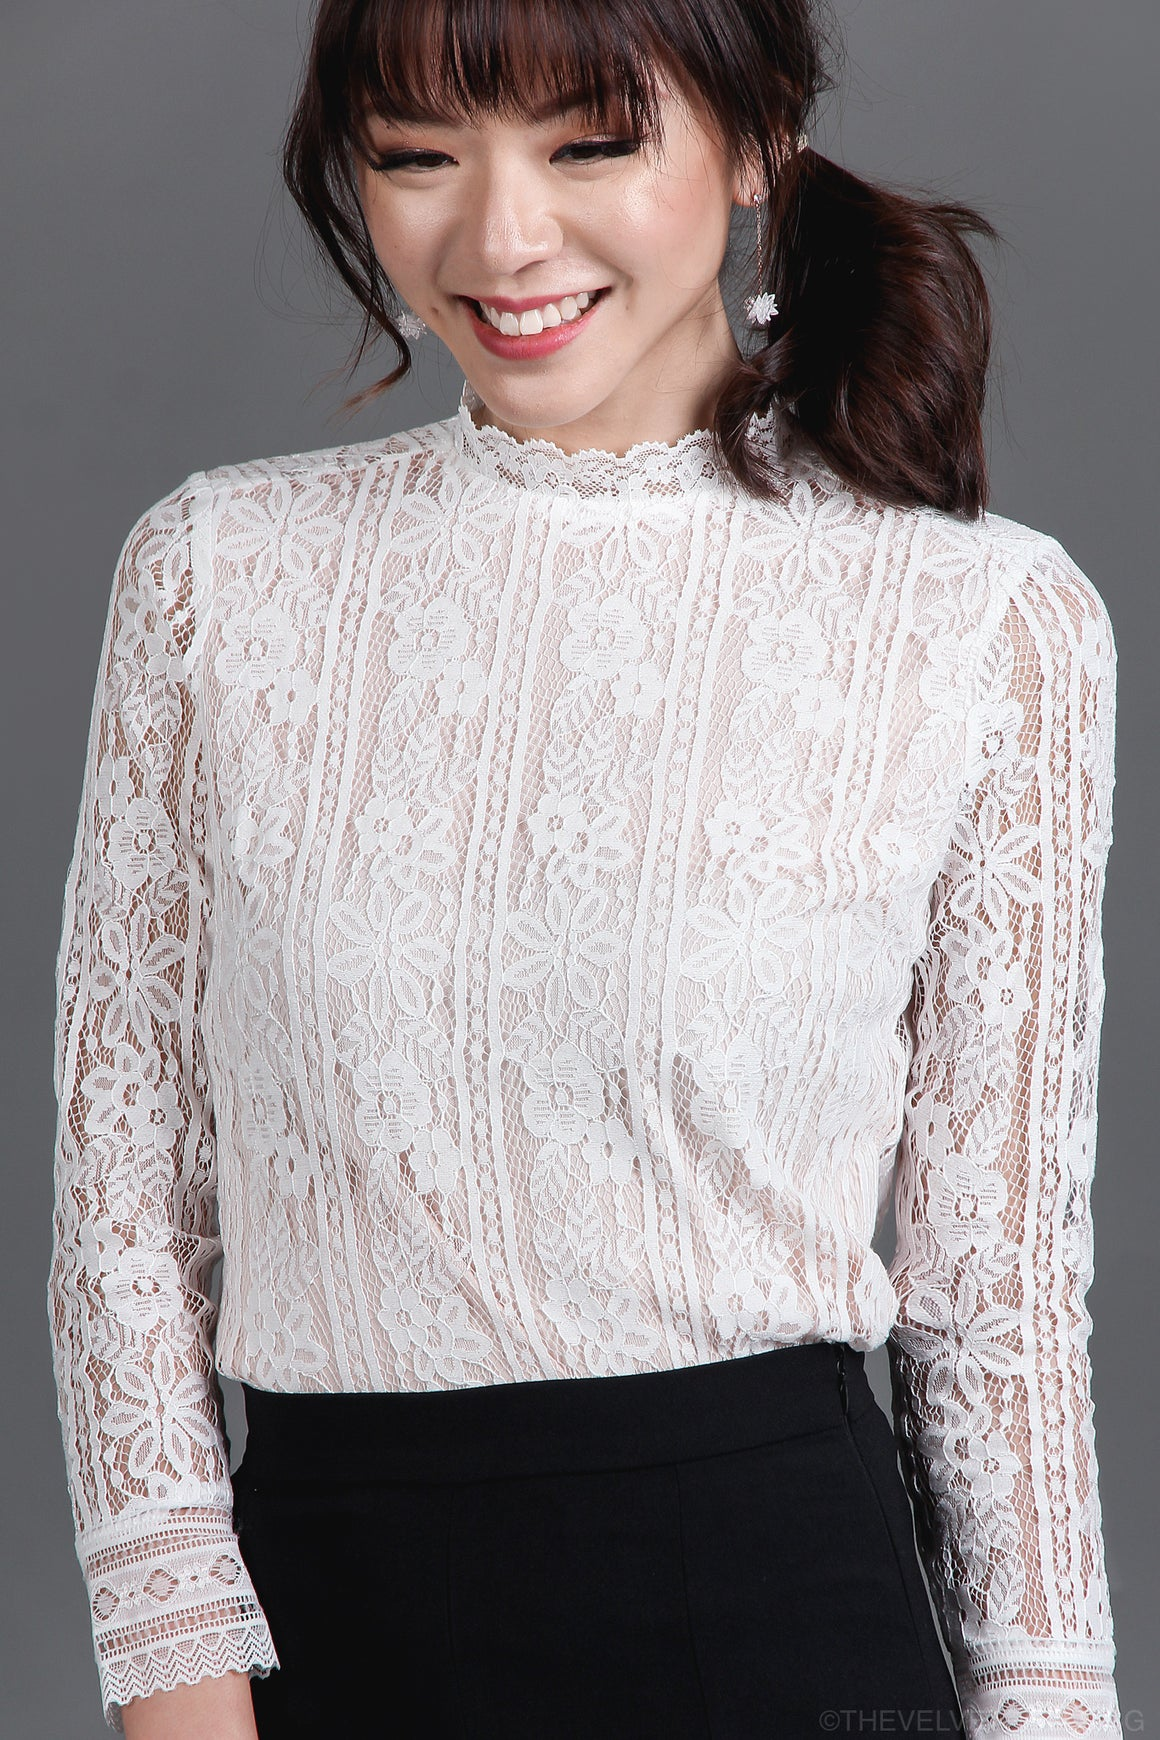 Restocked* Pandora Lace Blouse in White